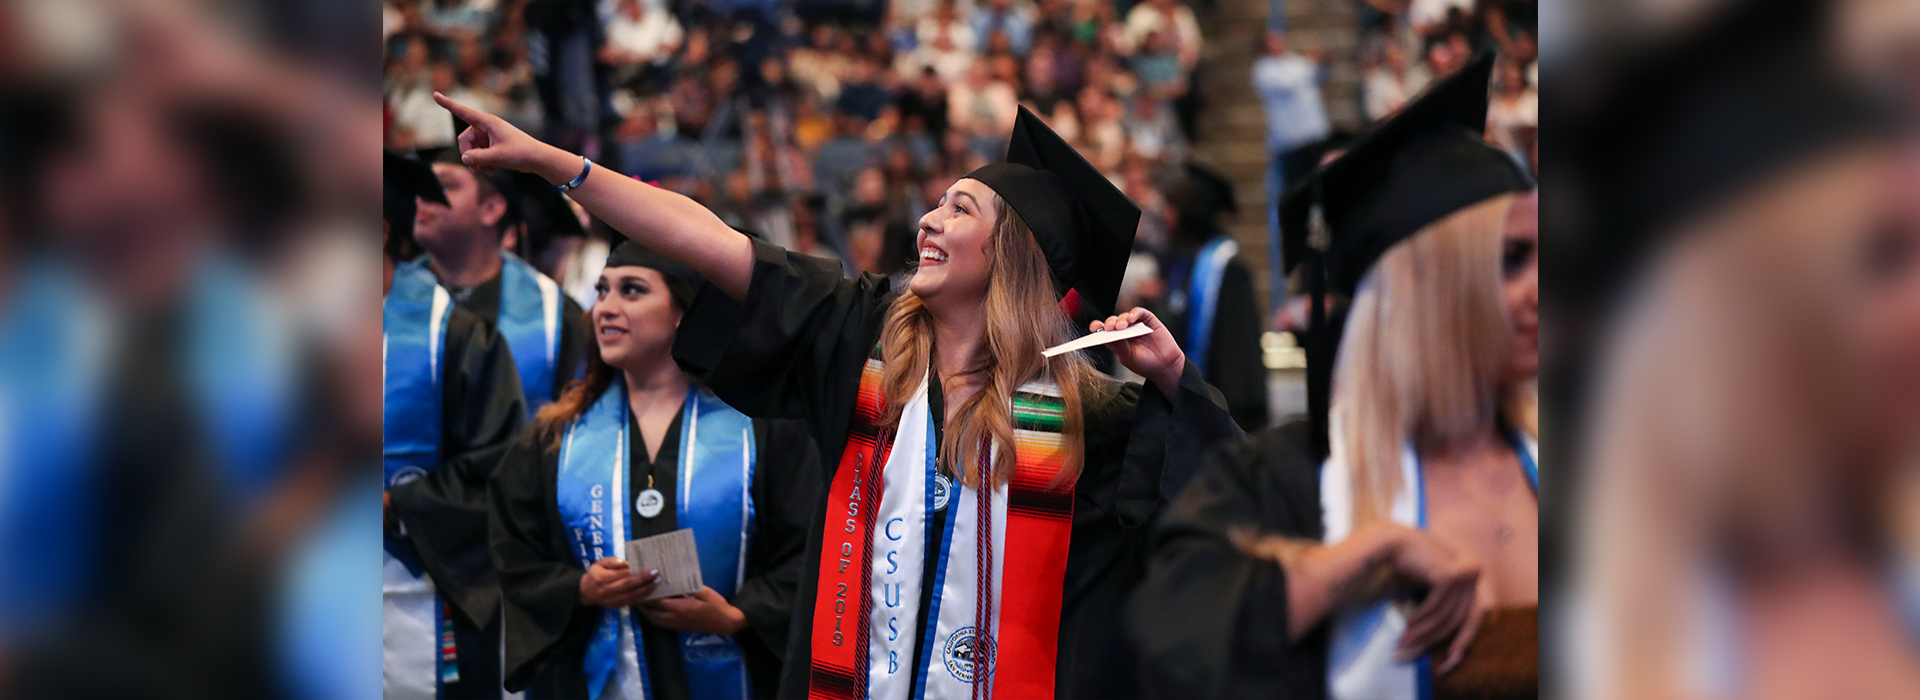 CSUSB ranked among top schools in awarding degrees to Hispanics